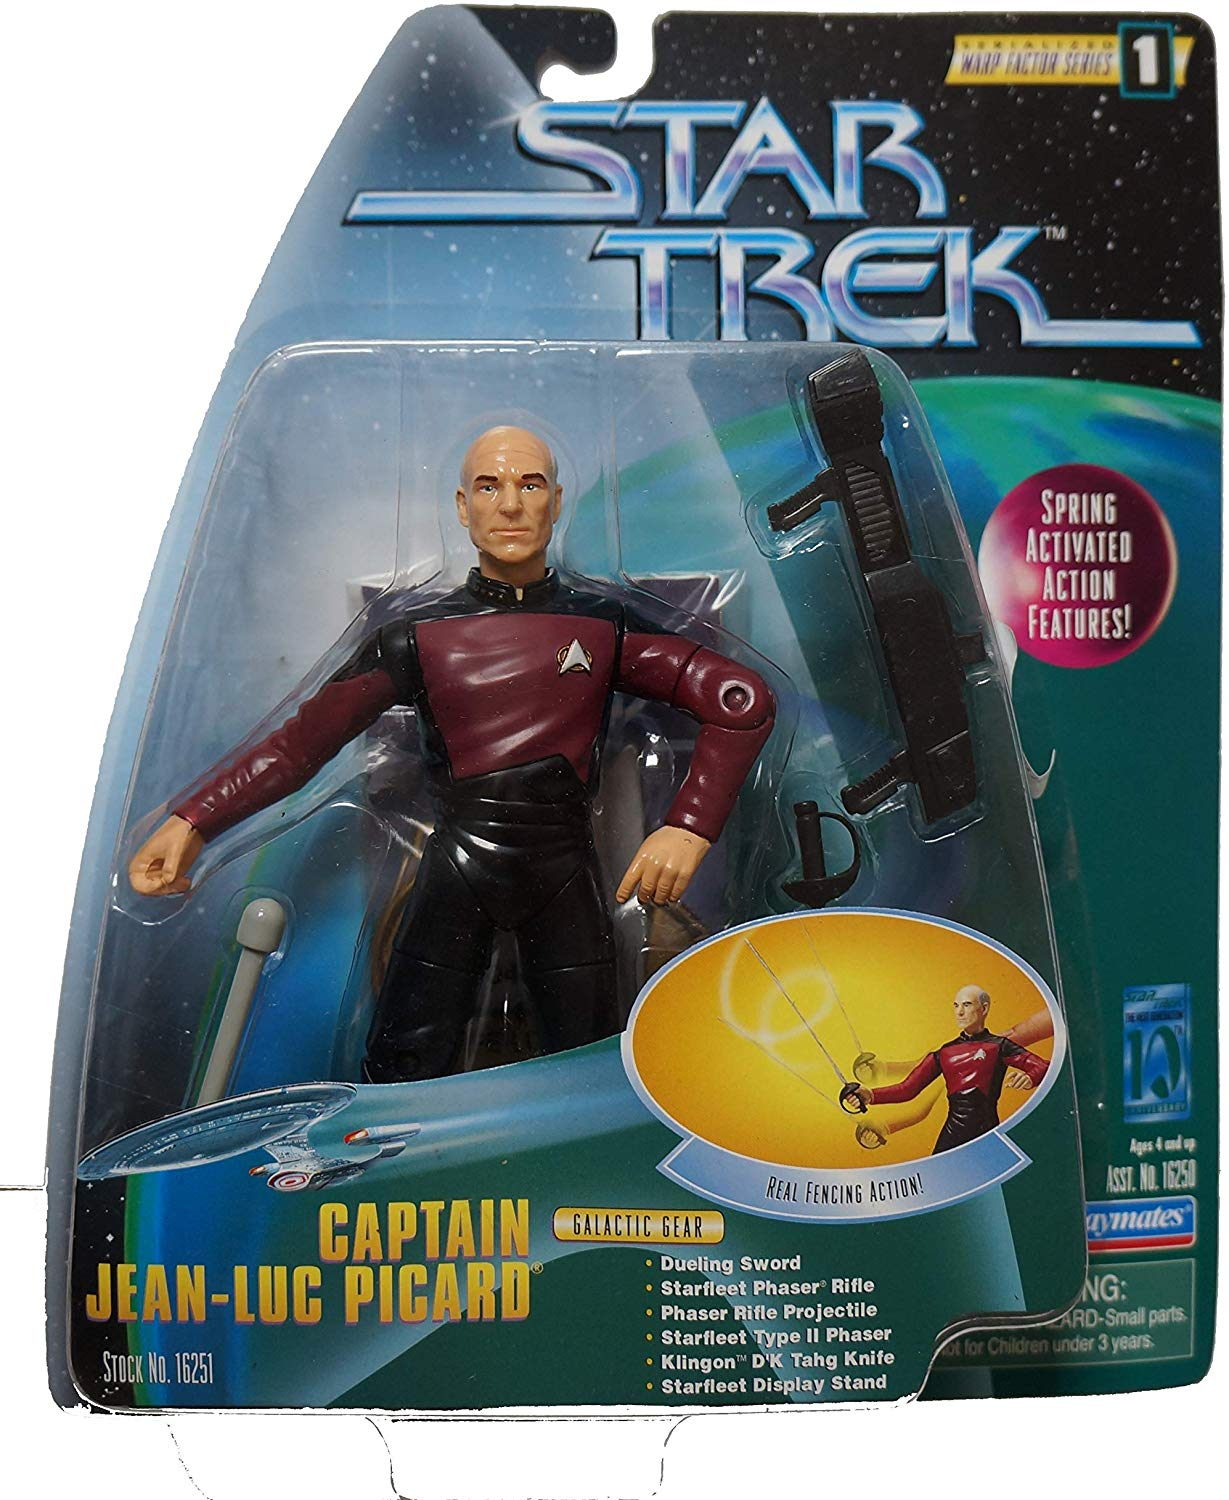 Captain Picard fencing figurine